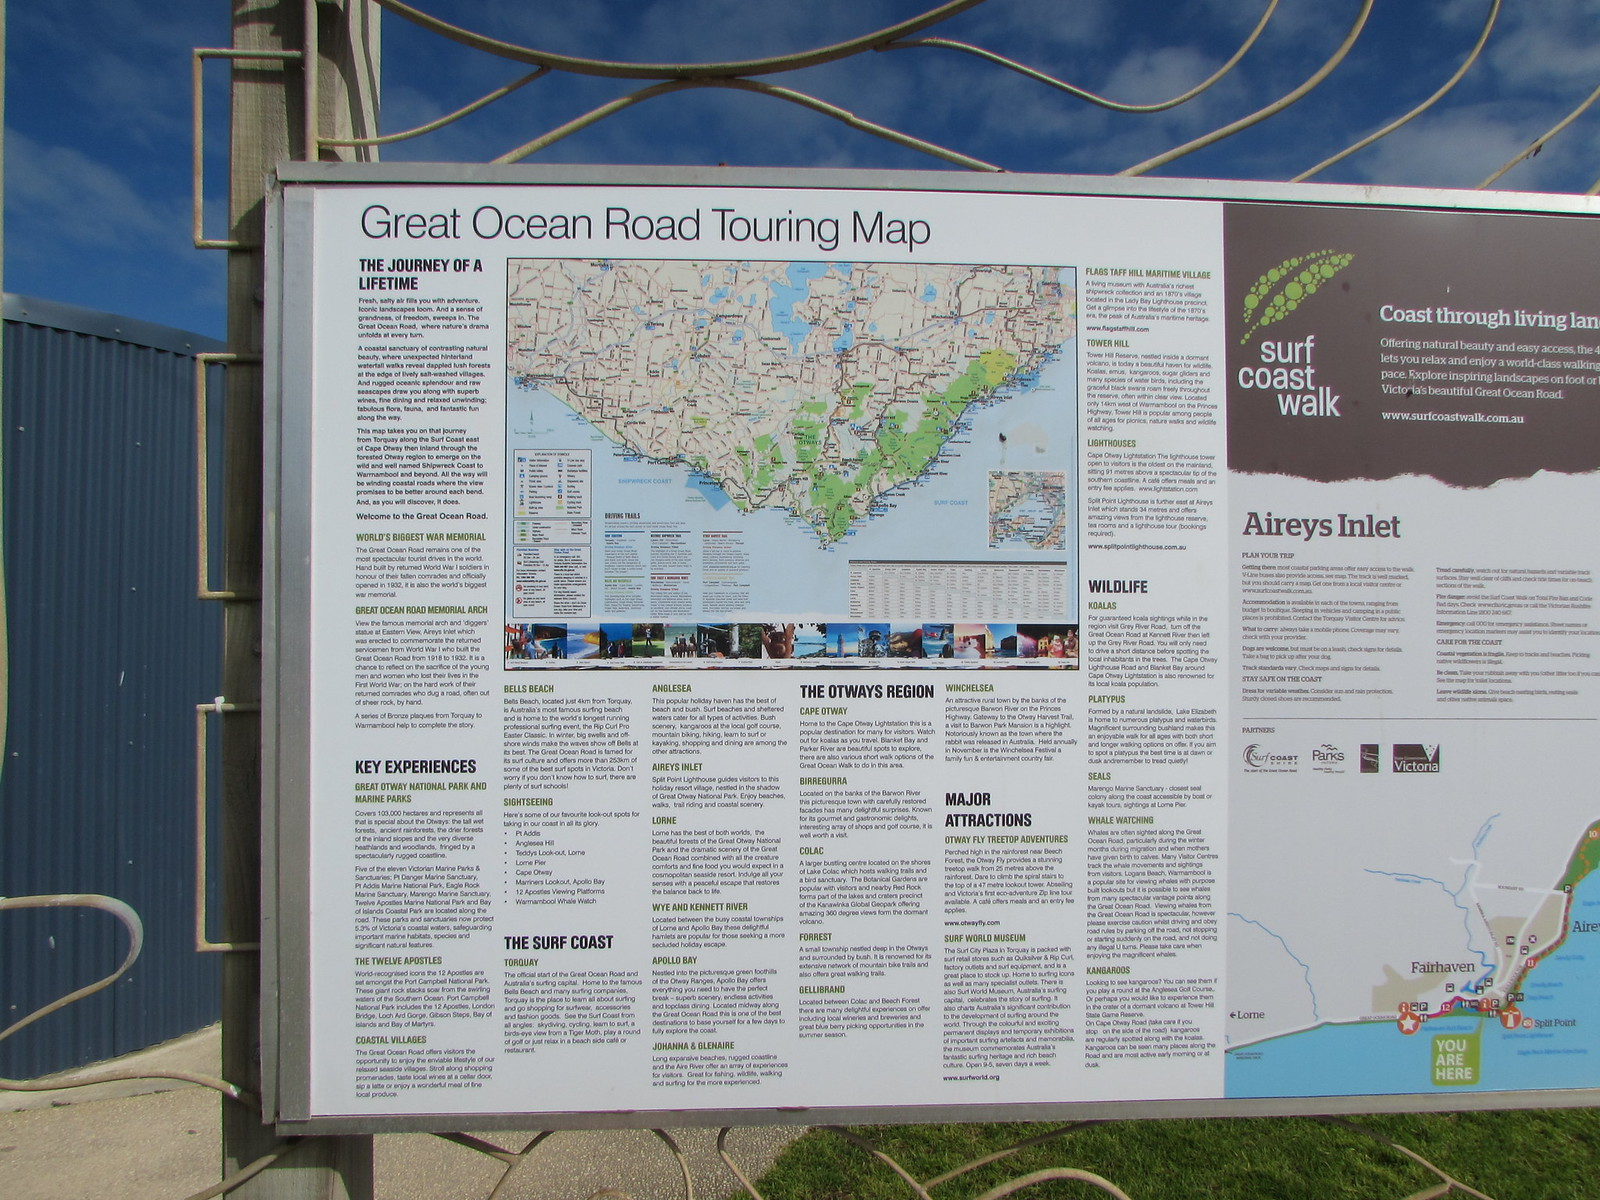 GOR Touring Map